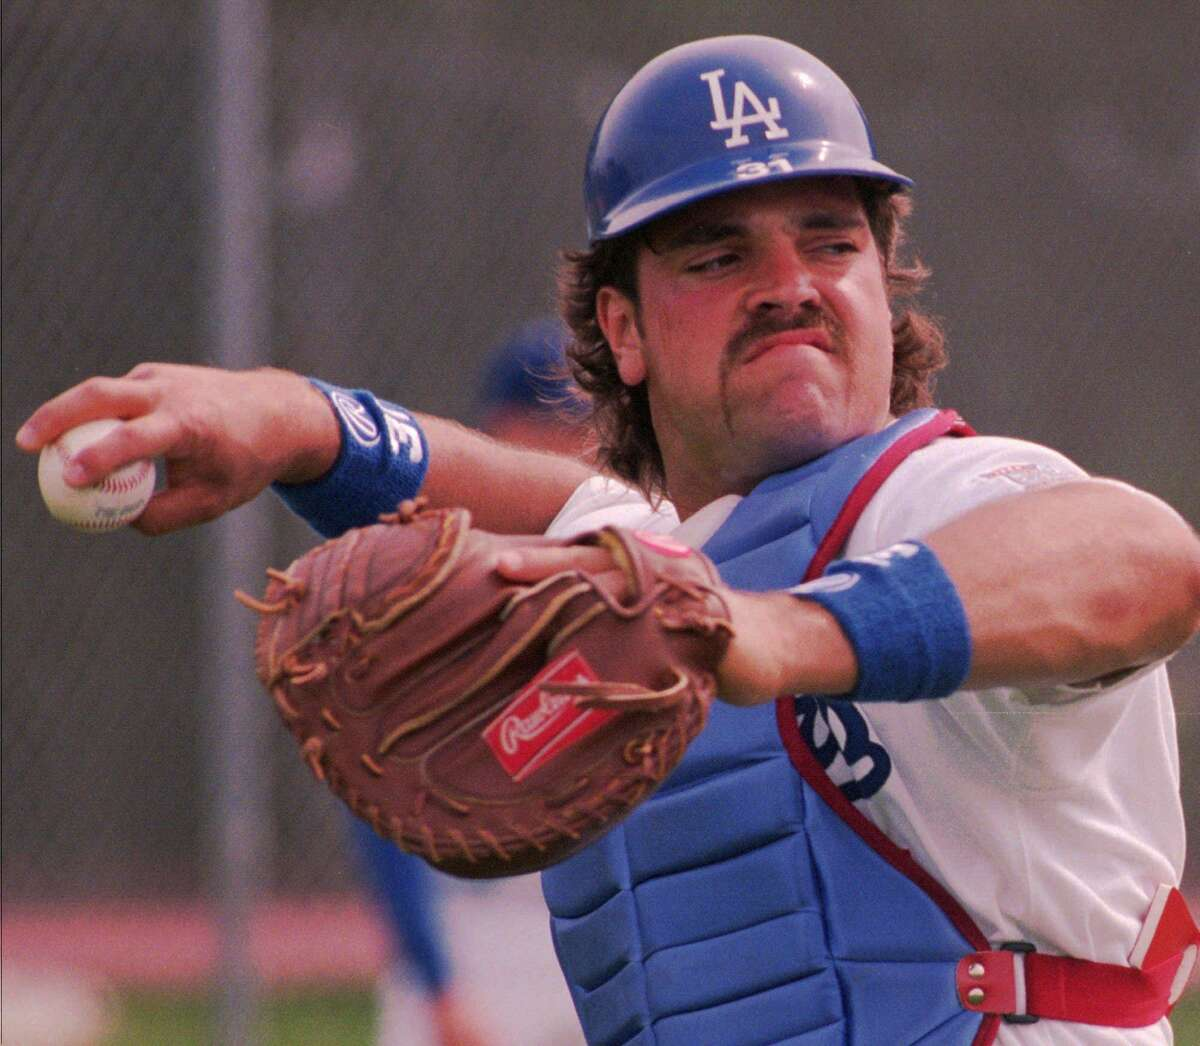 Los Angeles Dodgers catcher Mike Piazza warms up during practice in this Feb. 22, 1998, file photo.